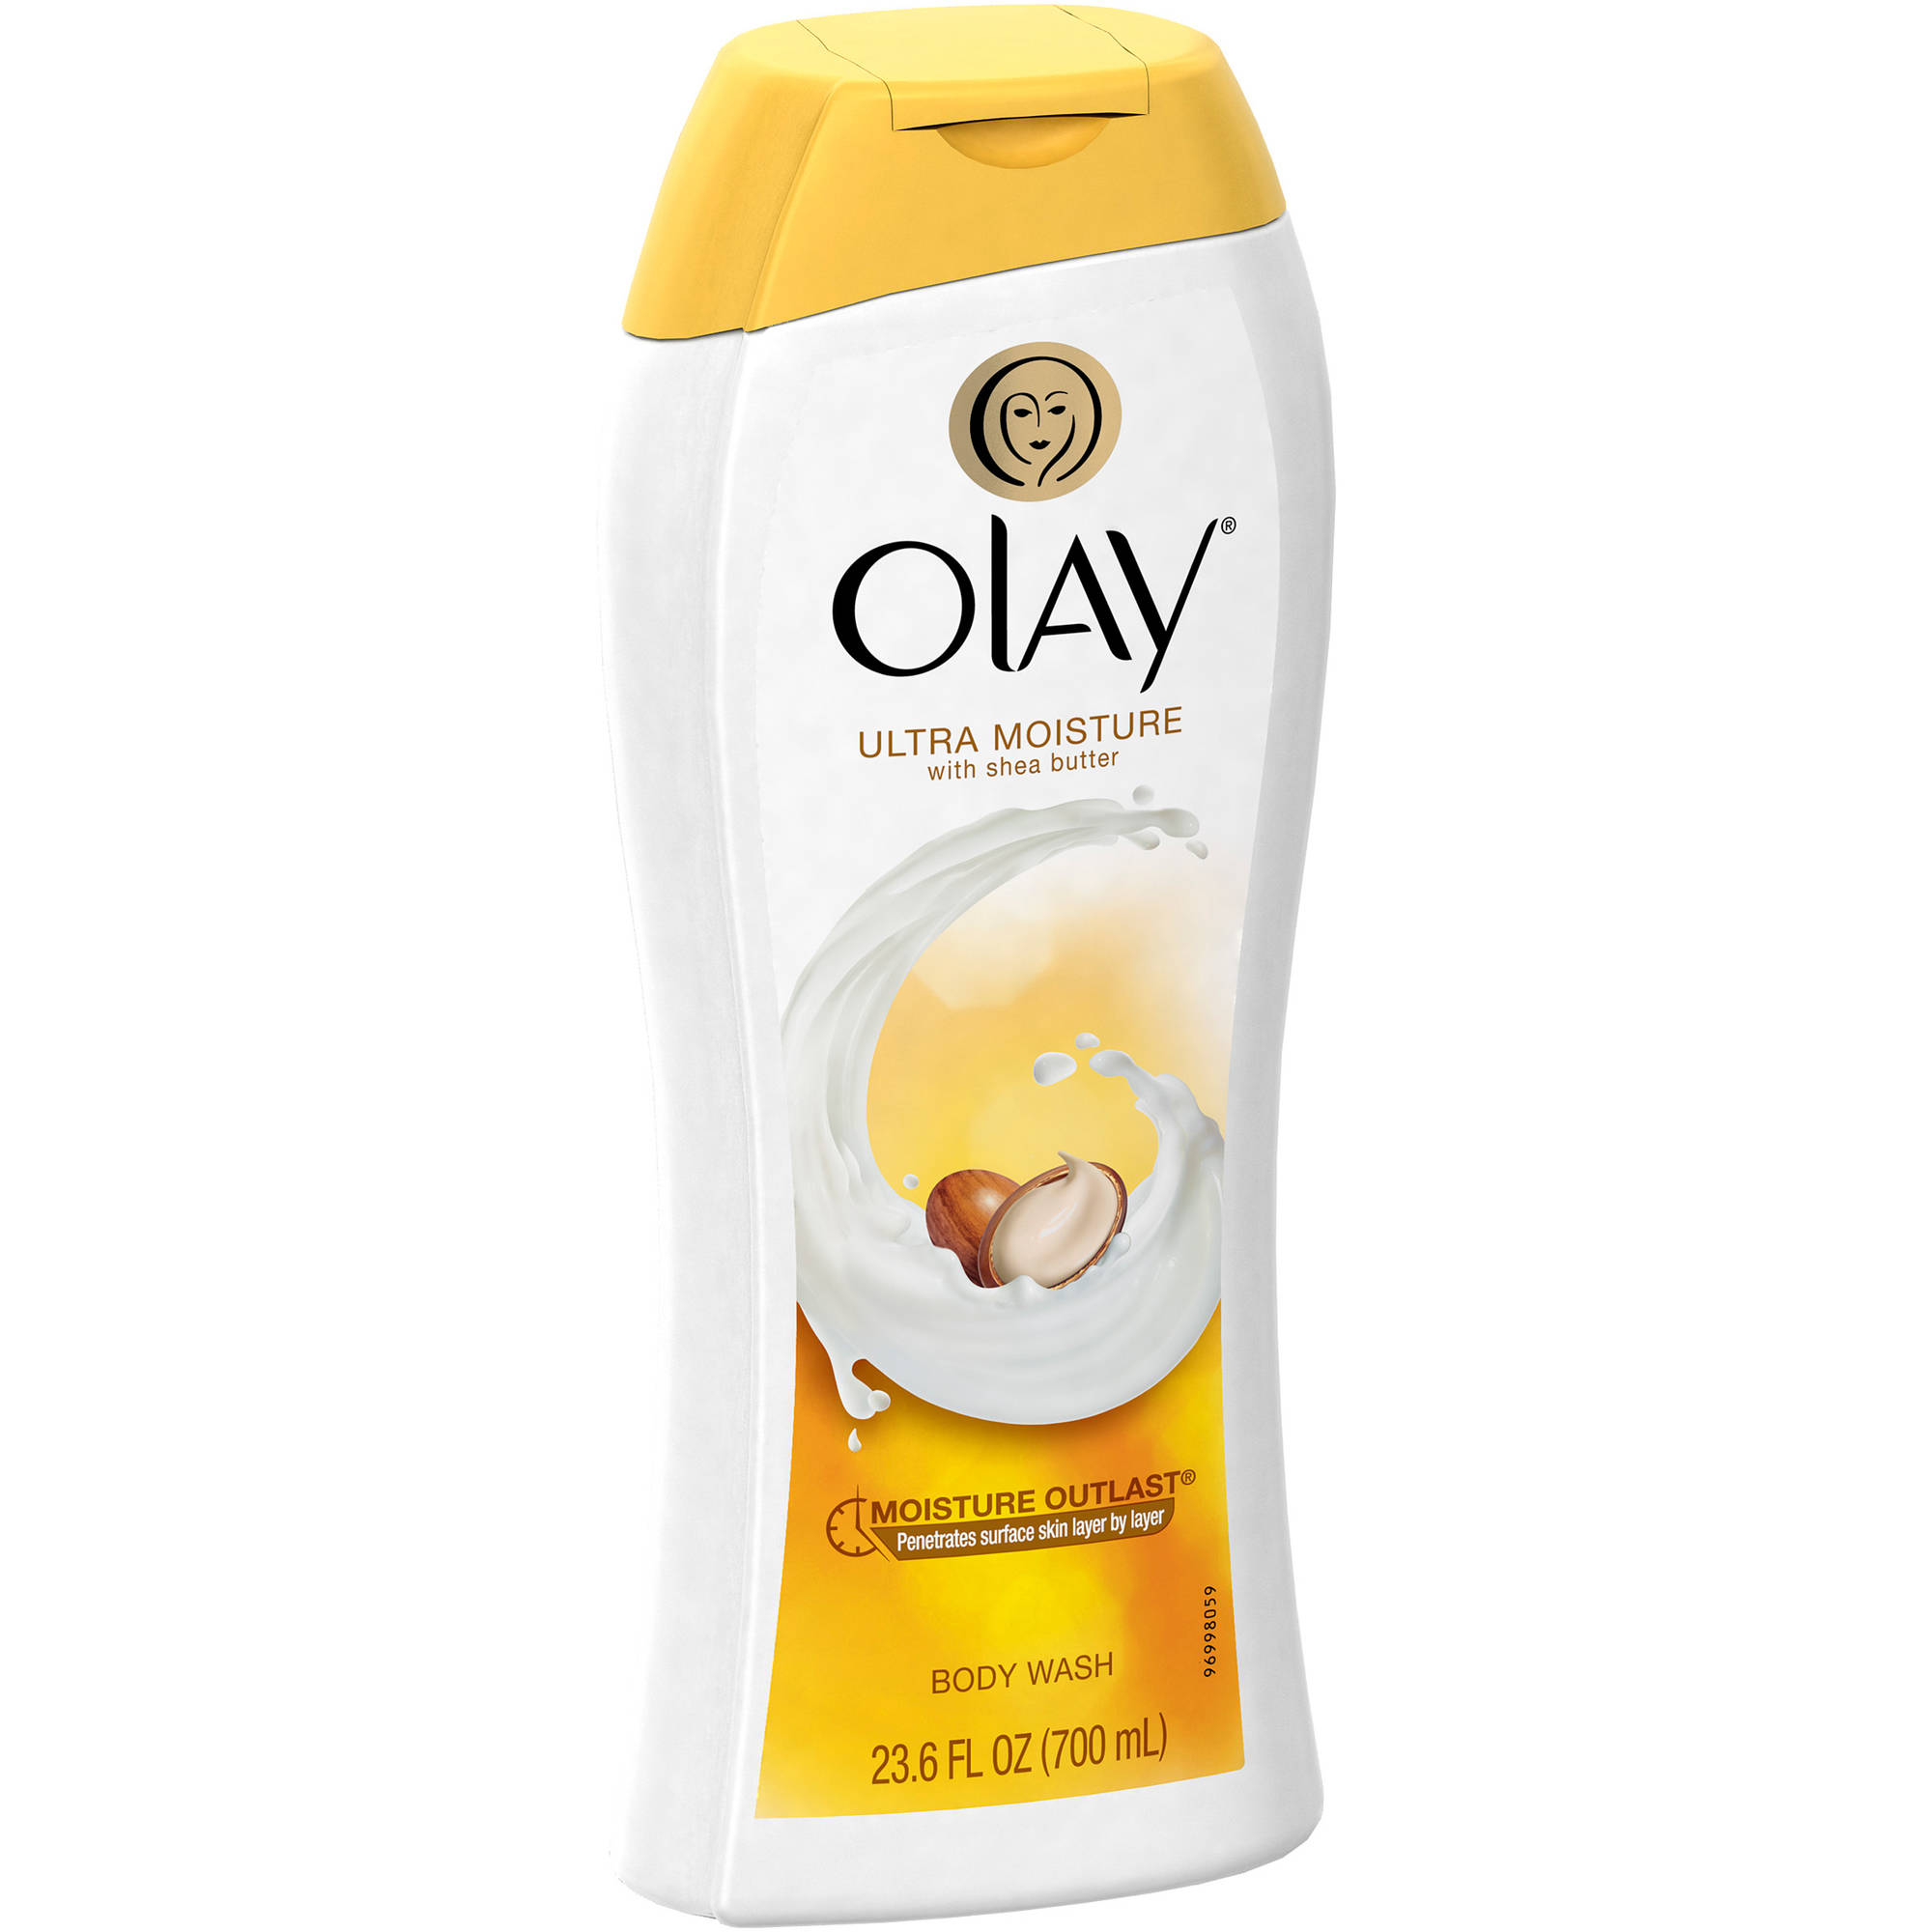 Olay Ultra Moisture Body Wash with Shea Butter, 23.6 fl oz